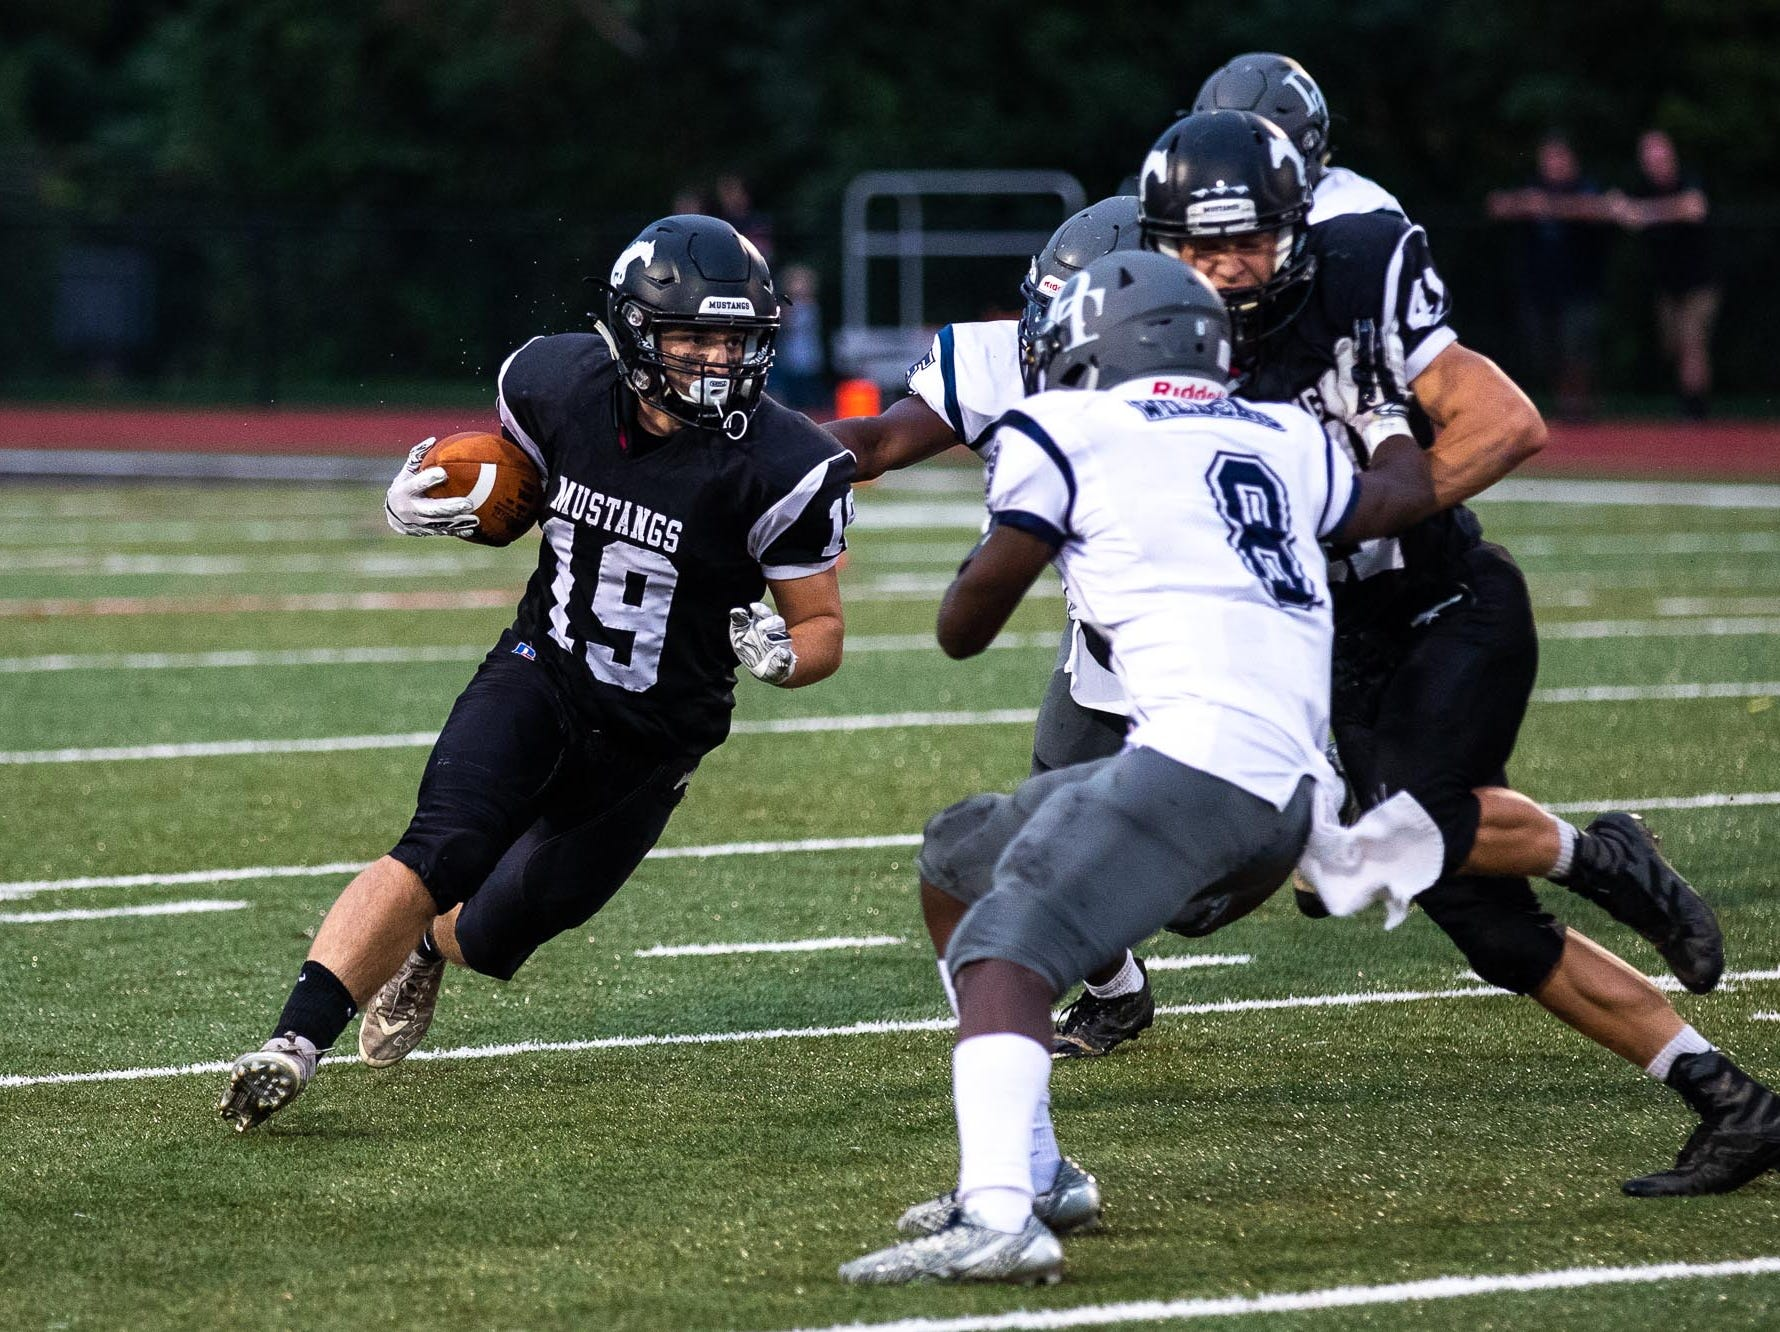 South Western's Nick Boone (19) runs the ball during a football game between South Western and Dallastown, Friday, Sept. 14, 2018, at South Western High School in Penn Township. Dallastown won, 35-7.